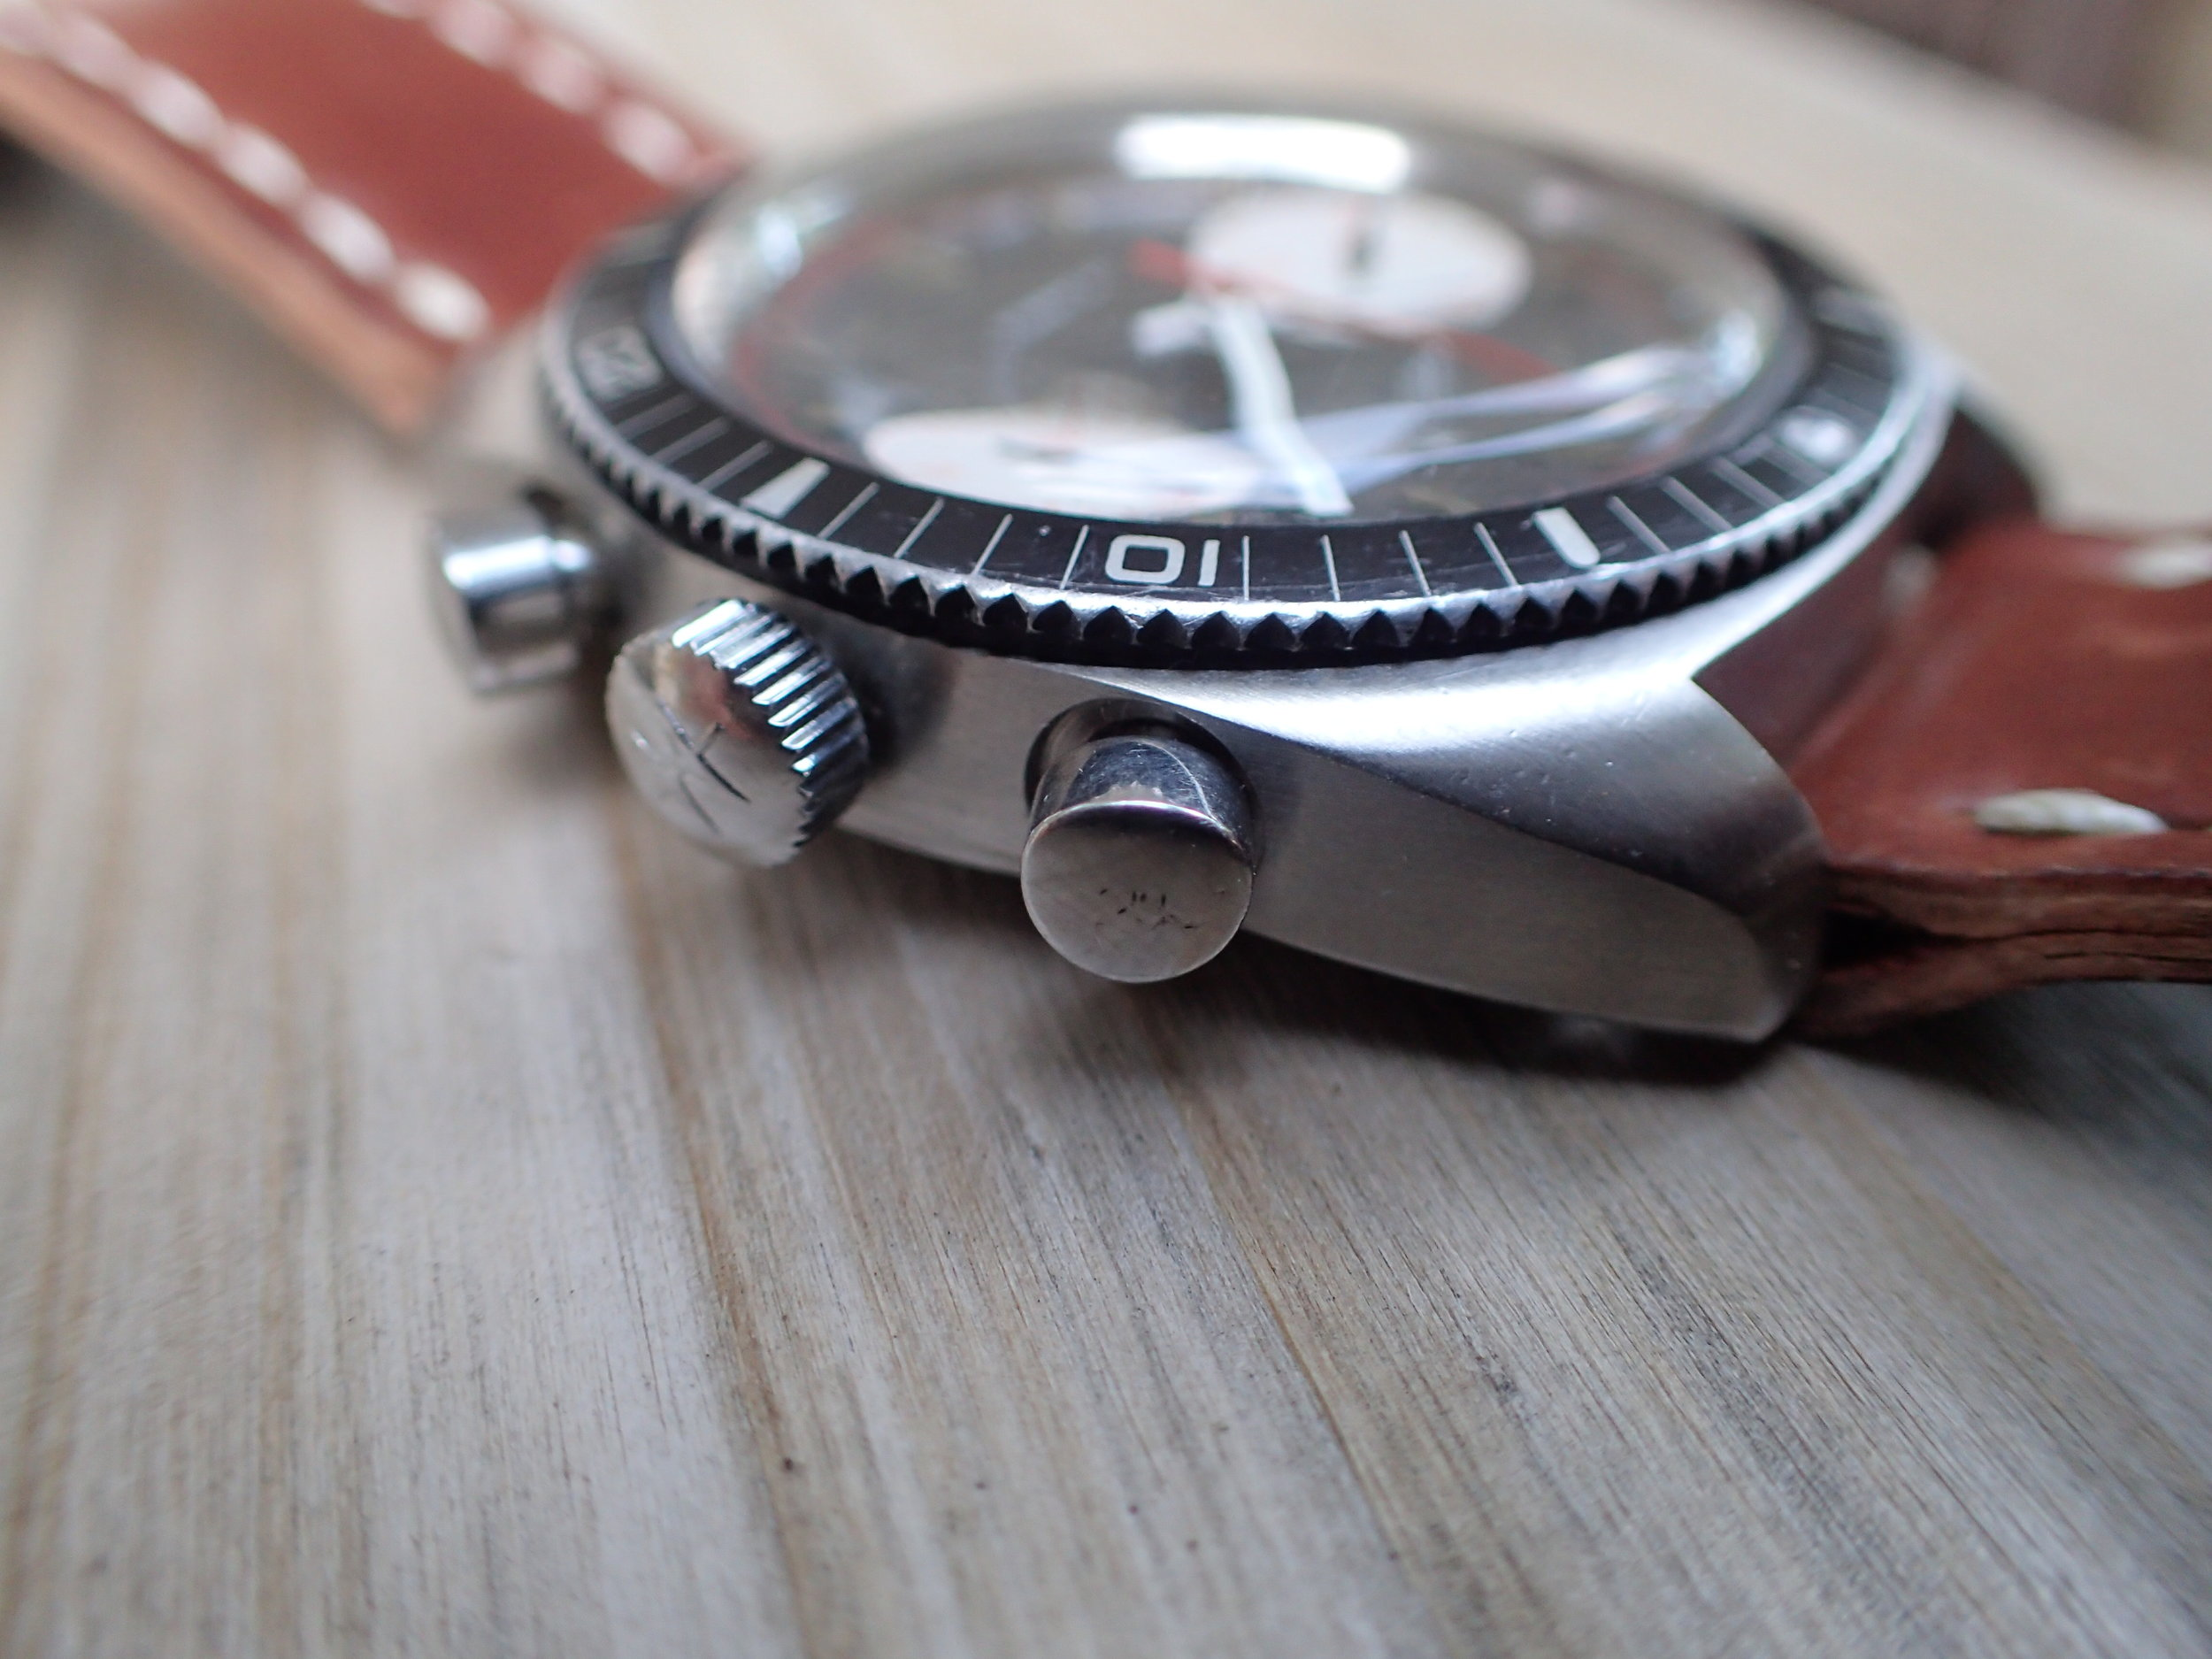 Seen here, the softly triangular shape of the pushers and signed crown of the Chrono-Diver.